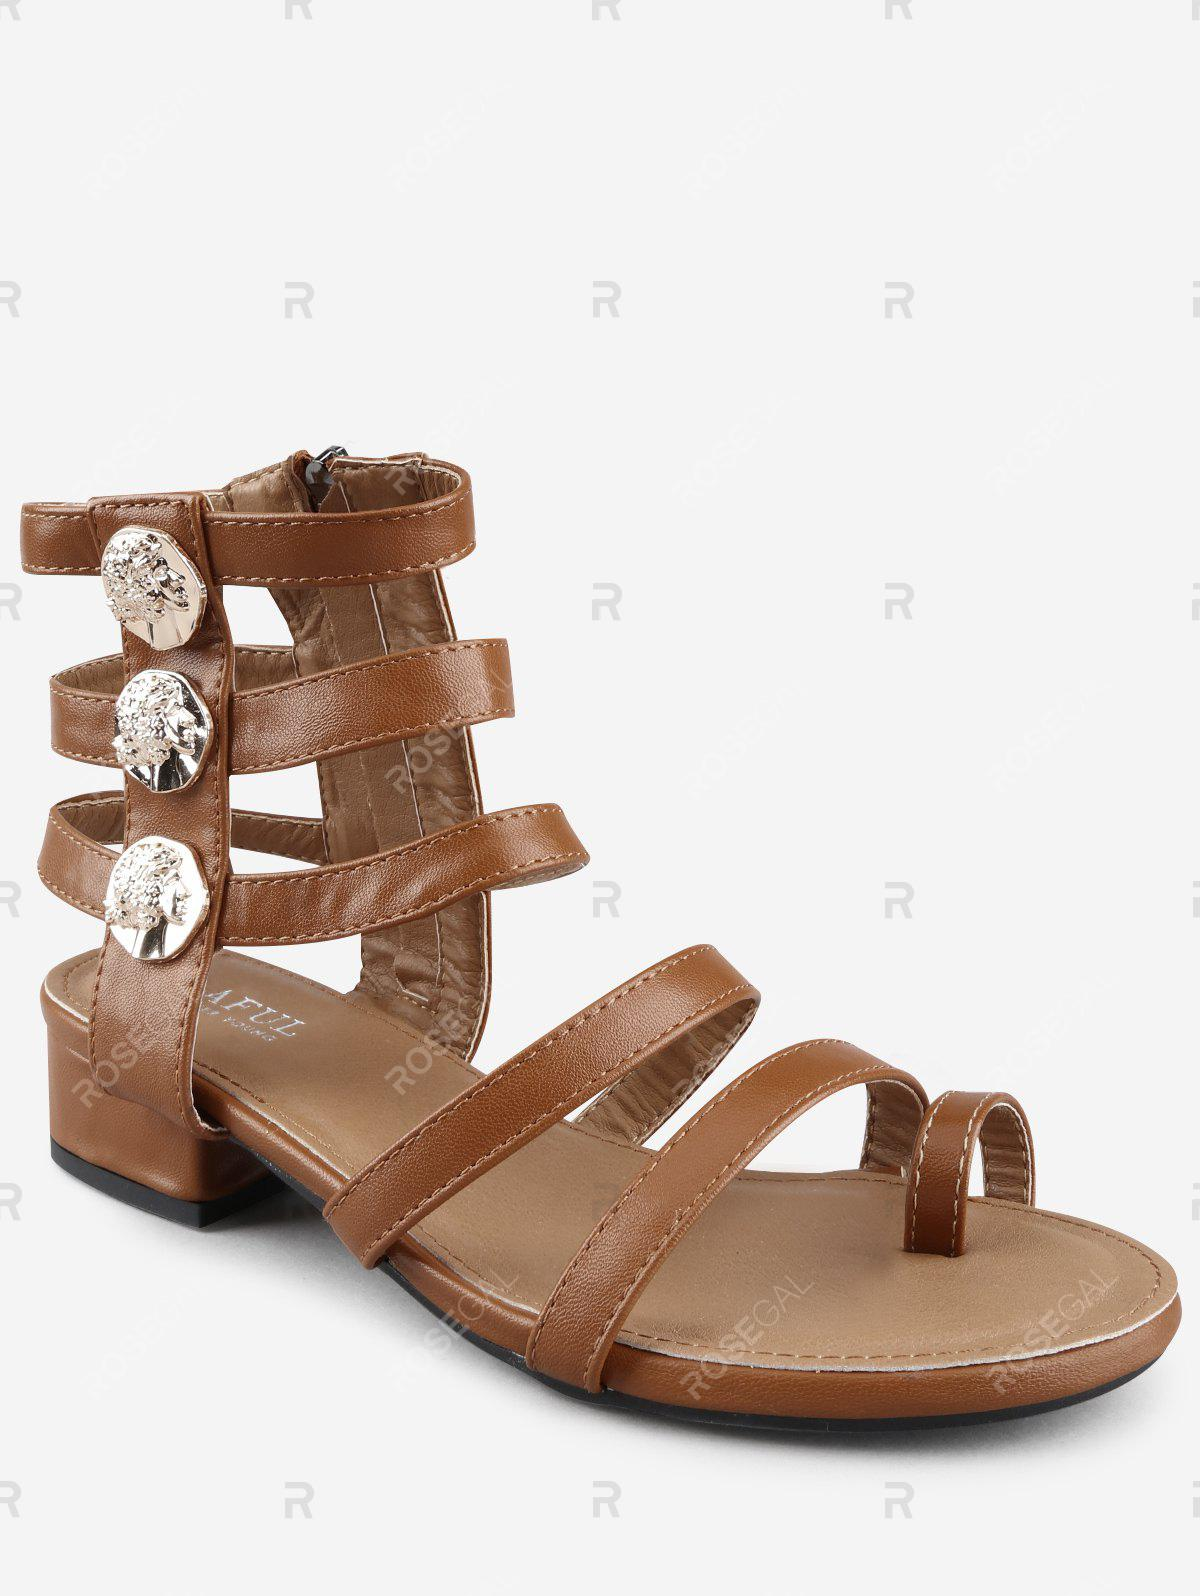 fbf4be4f3 Latest Low Heel Gladiator Strappy Thong Sandals